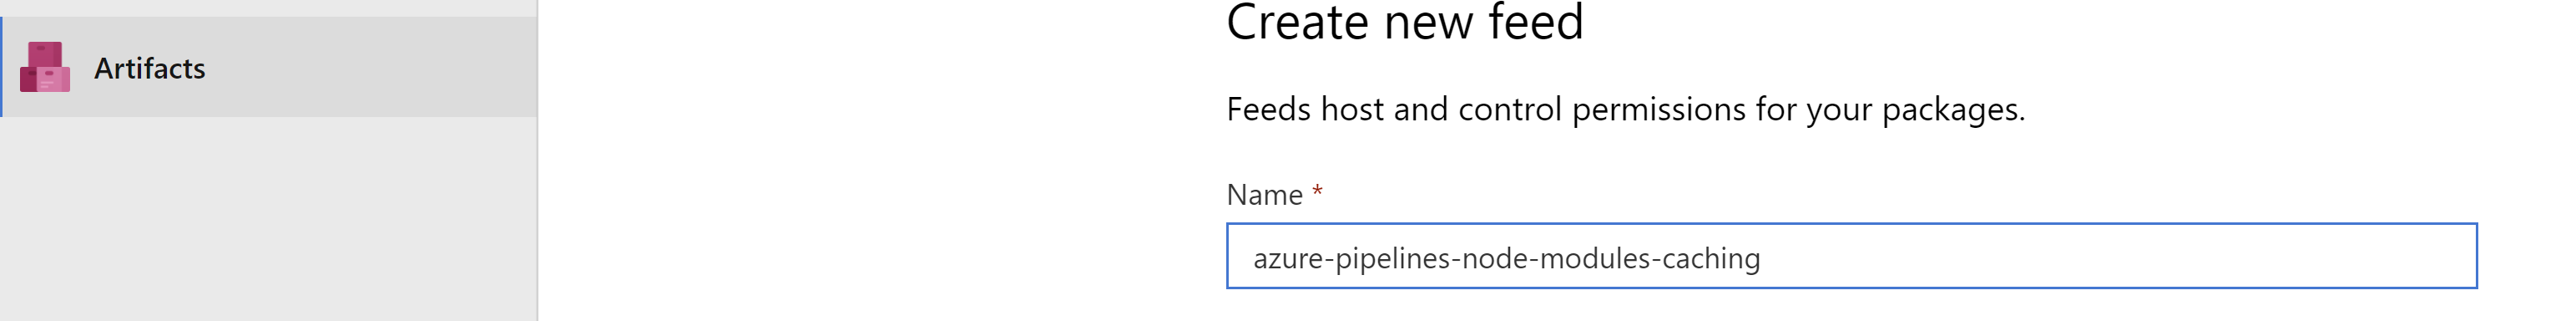 Azure artifact feed - create